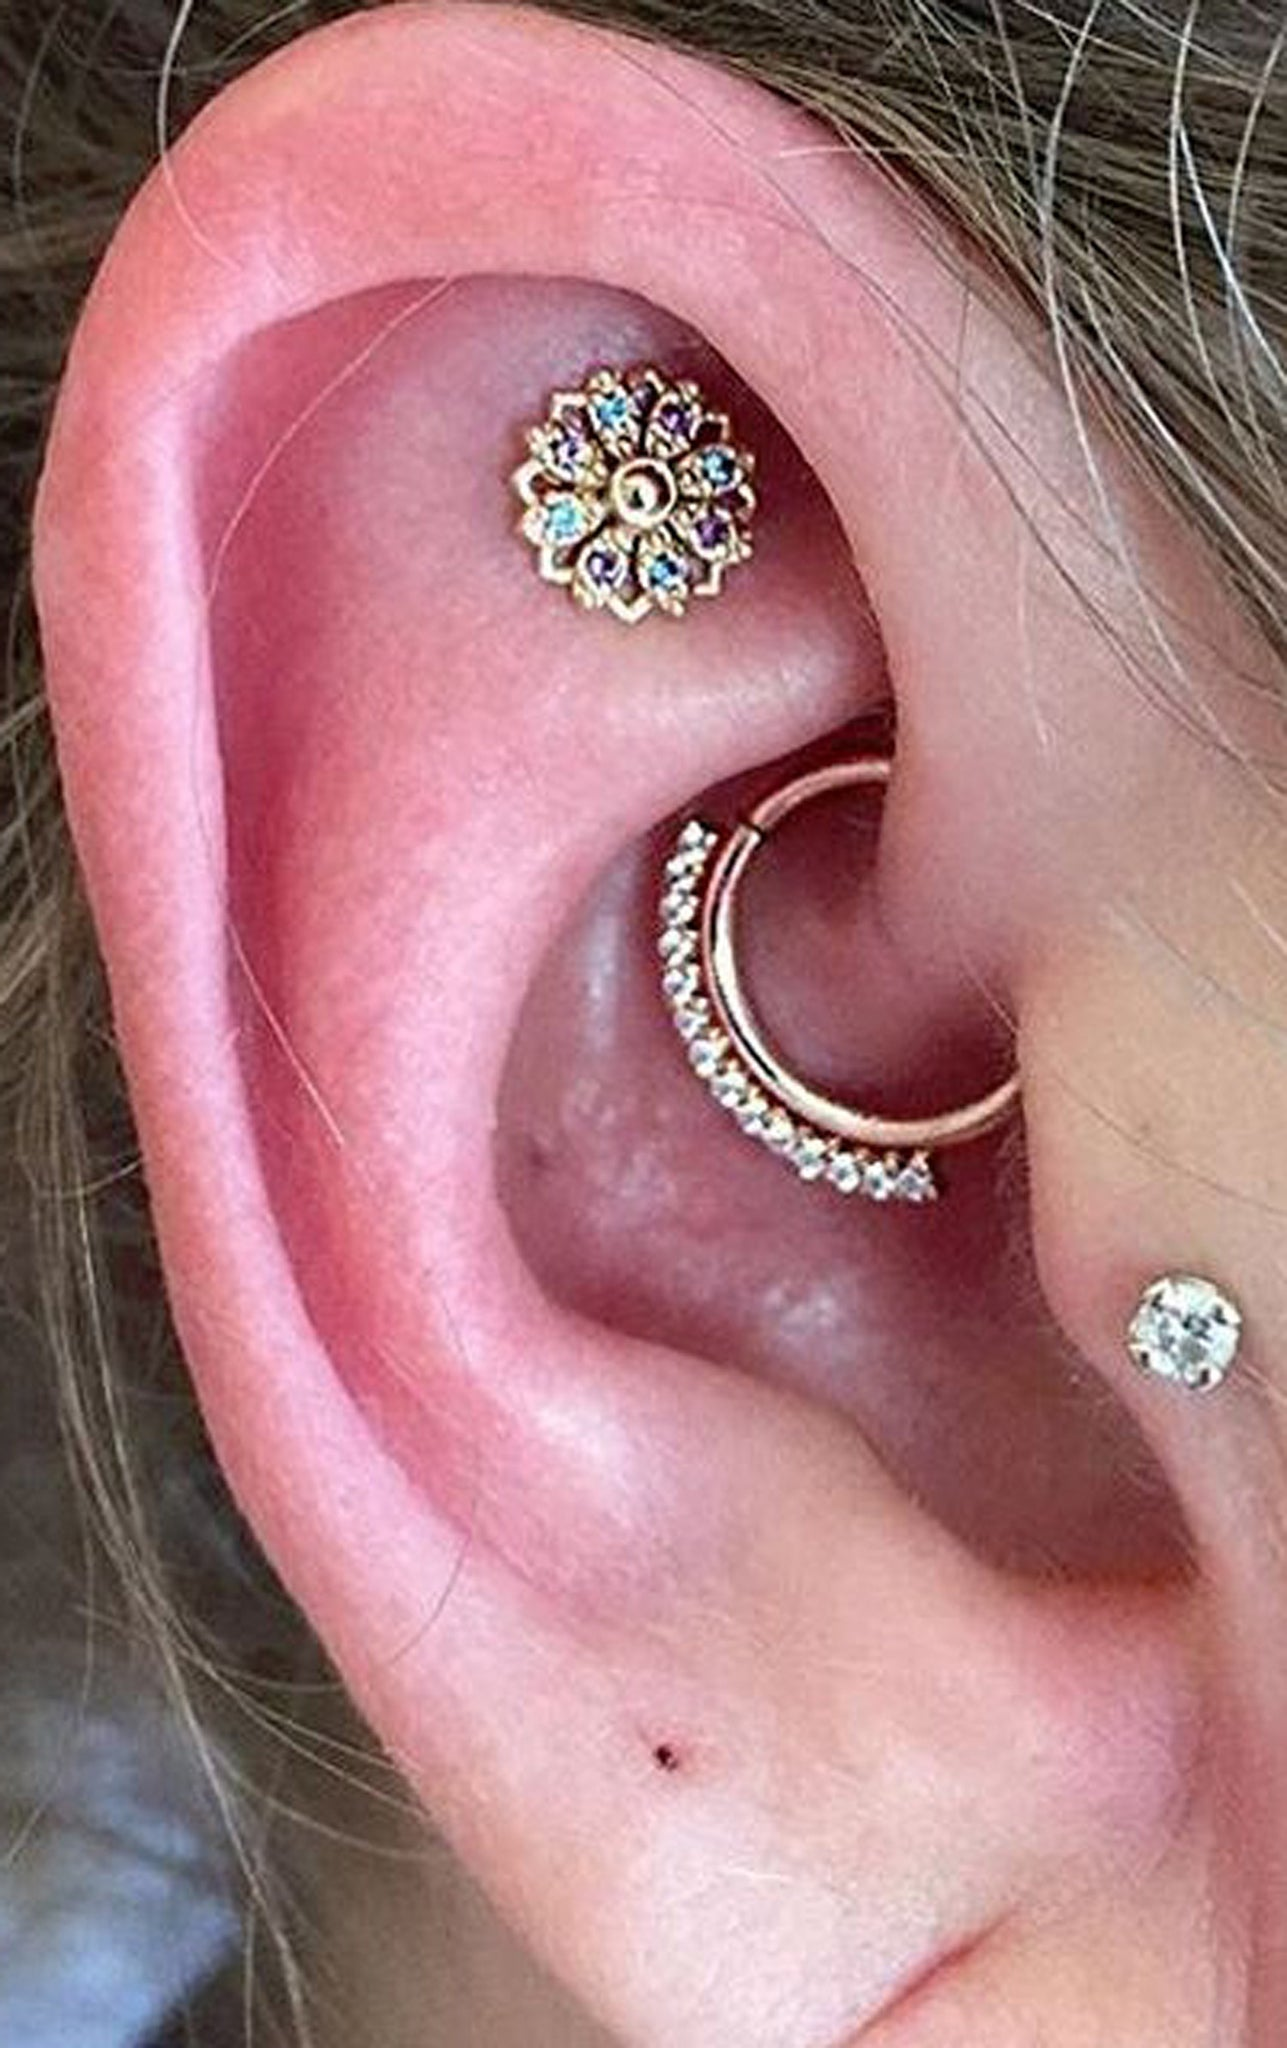 Celebrity Ear Piercing Ideas Combinations at MyBodiArt.com - Gold Daith Ring Hoop 16G - Constellation Earring - Tragus Stud